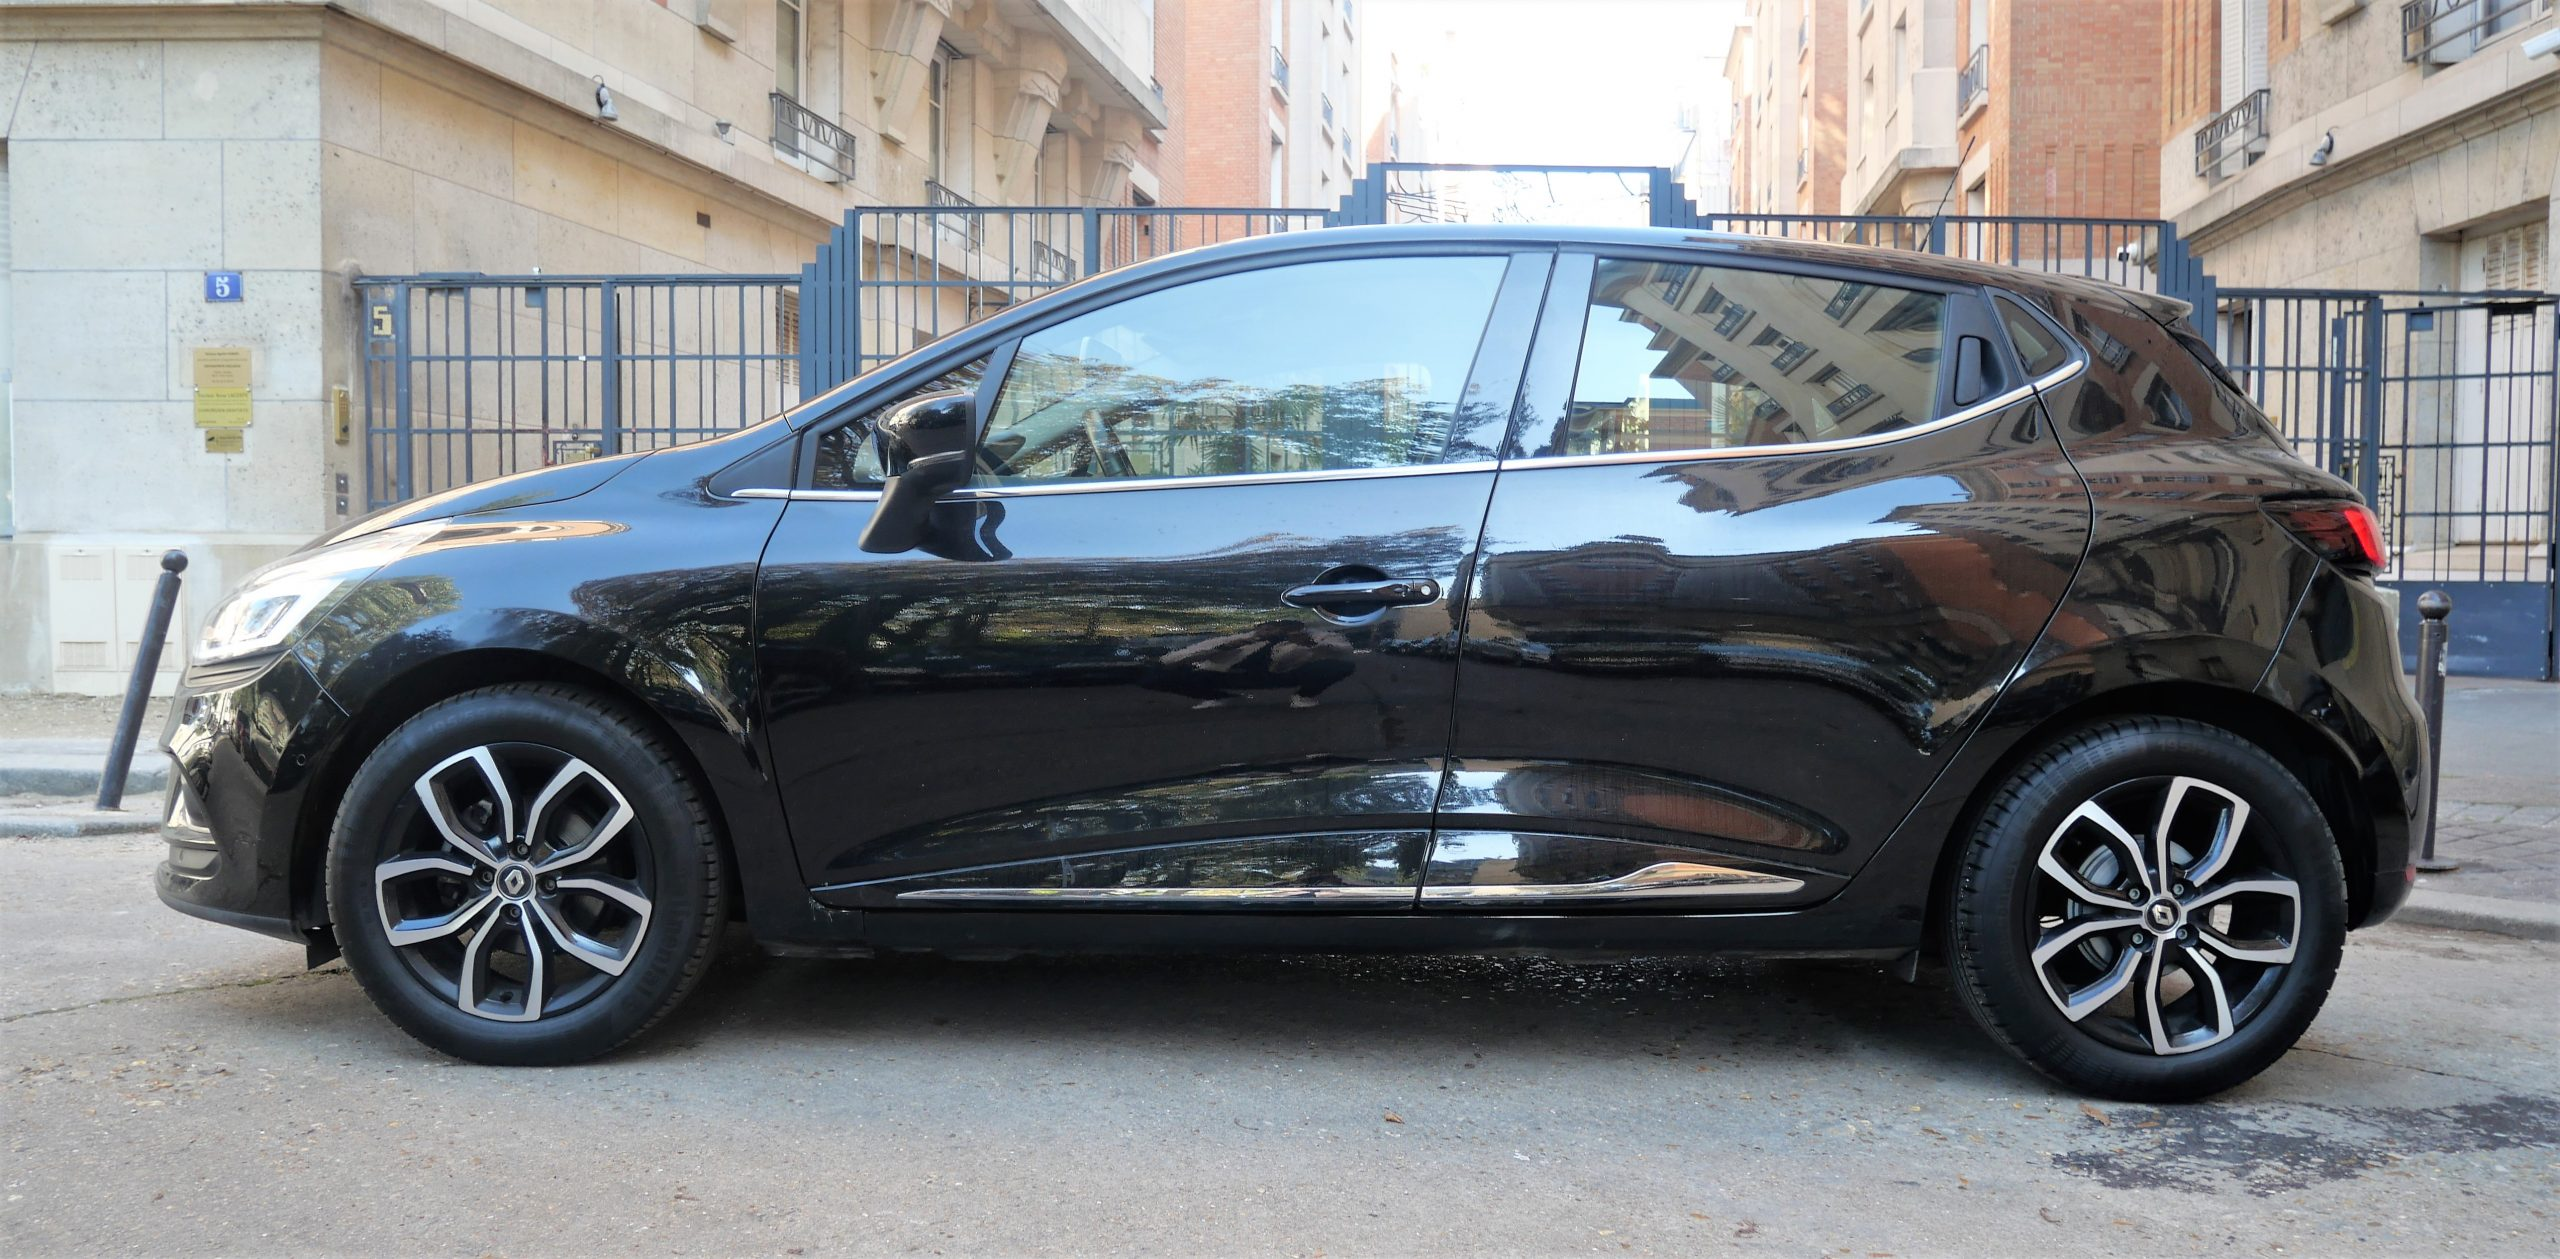 RENAULT Clio IV INTENS Phase 2 0.9 TCe 90 ch 1